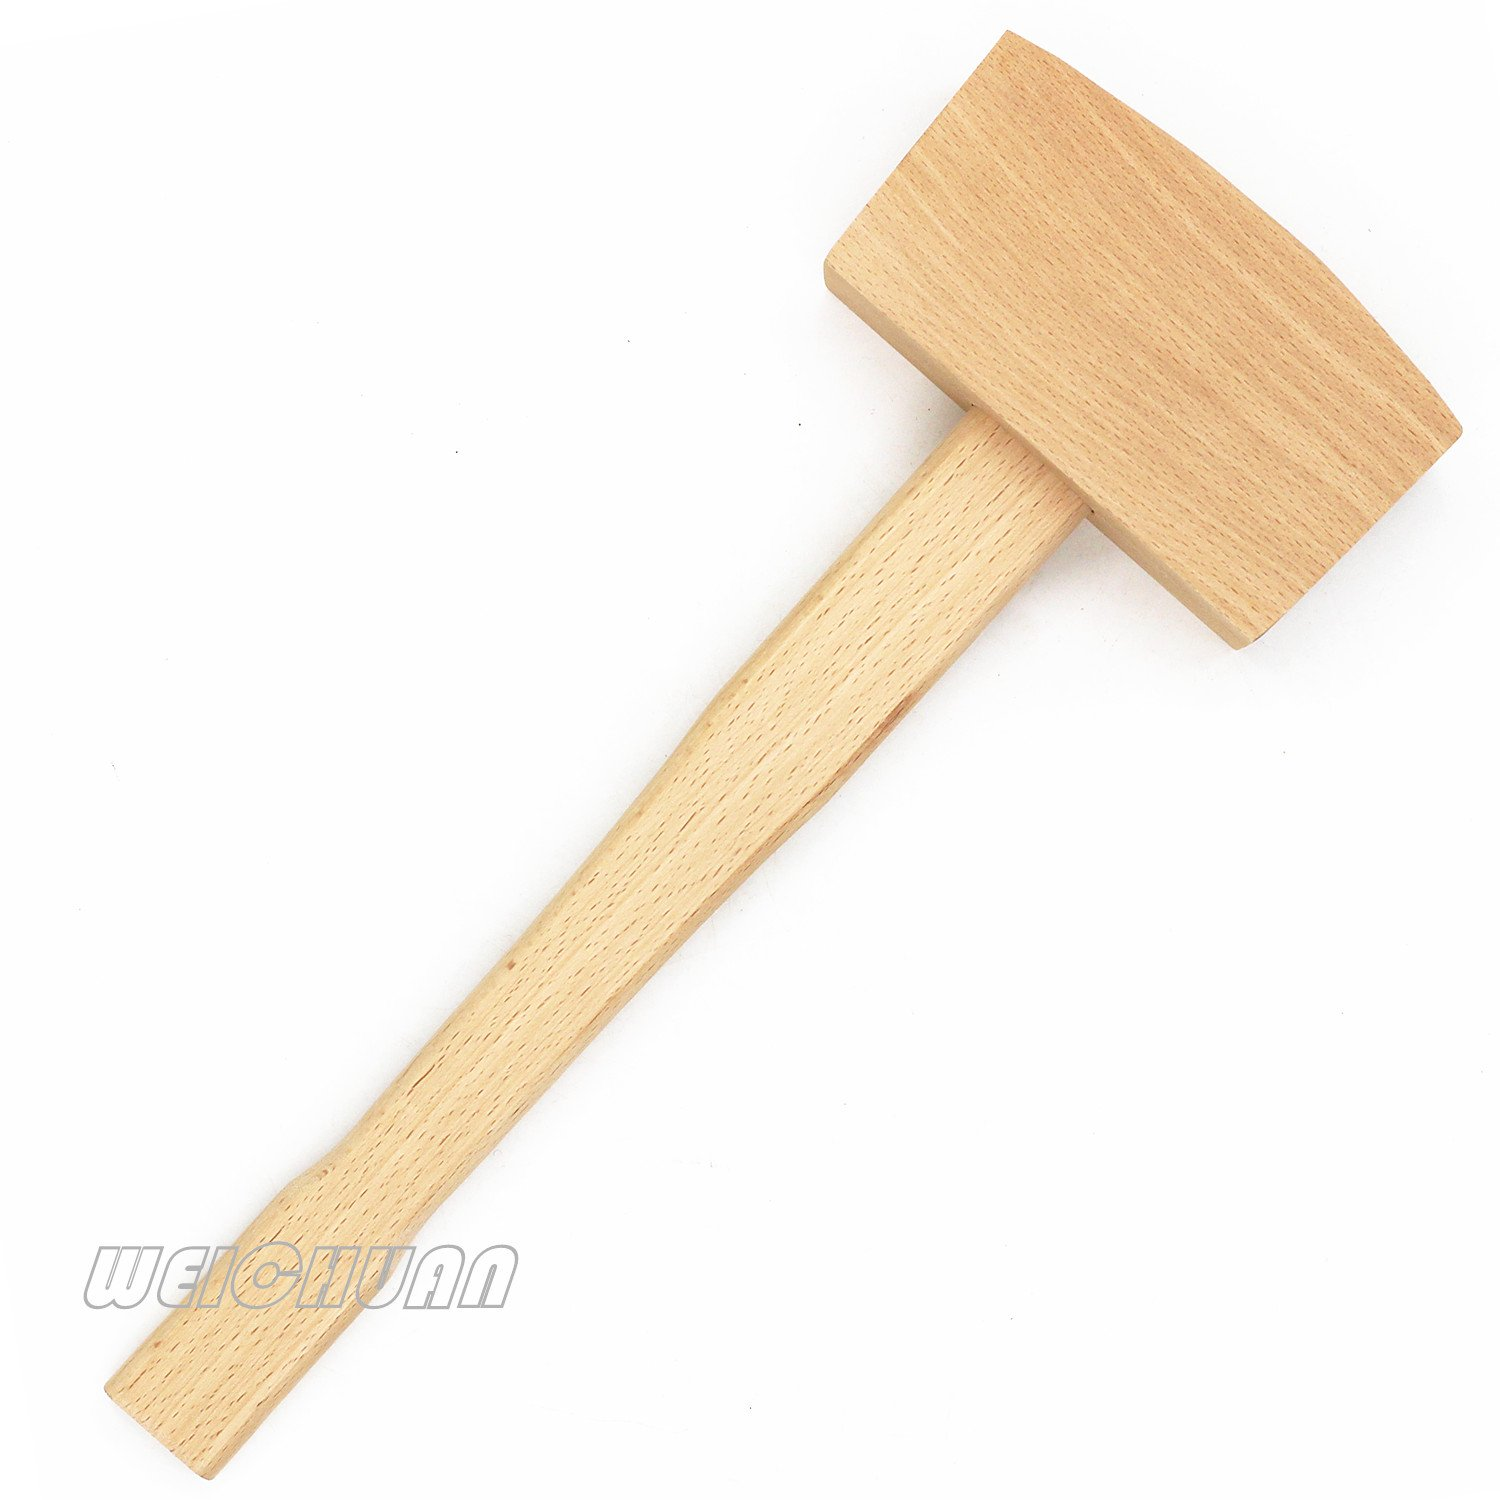 WEICHUAN 5'' Unfinished Beech Wood Mallet Ice Hammer Mallet - Solid Beechwood Damage-Free Striking Woodworking Carving Mallet Woodworking Hand Tool